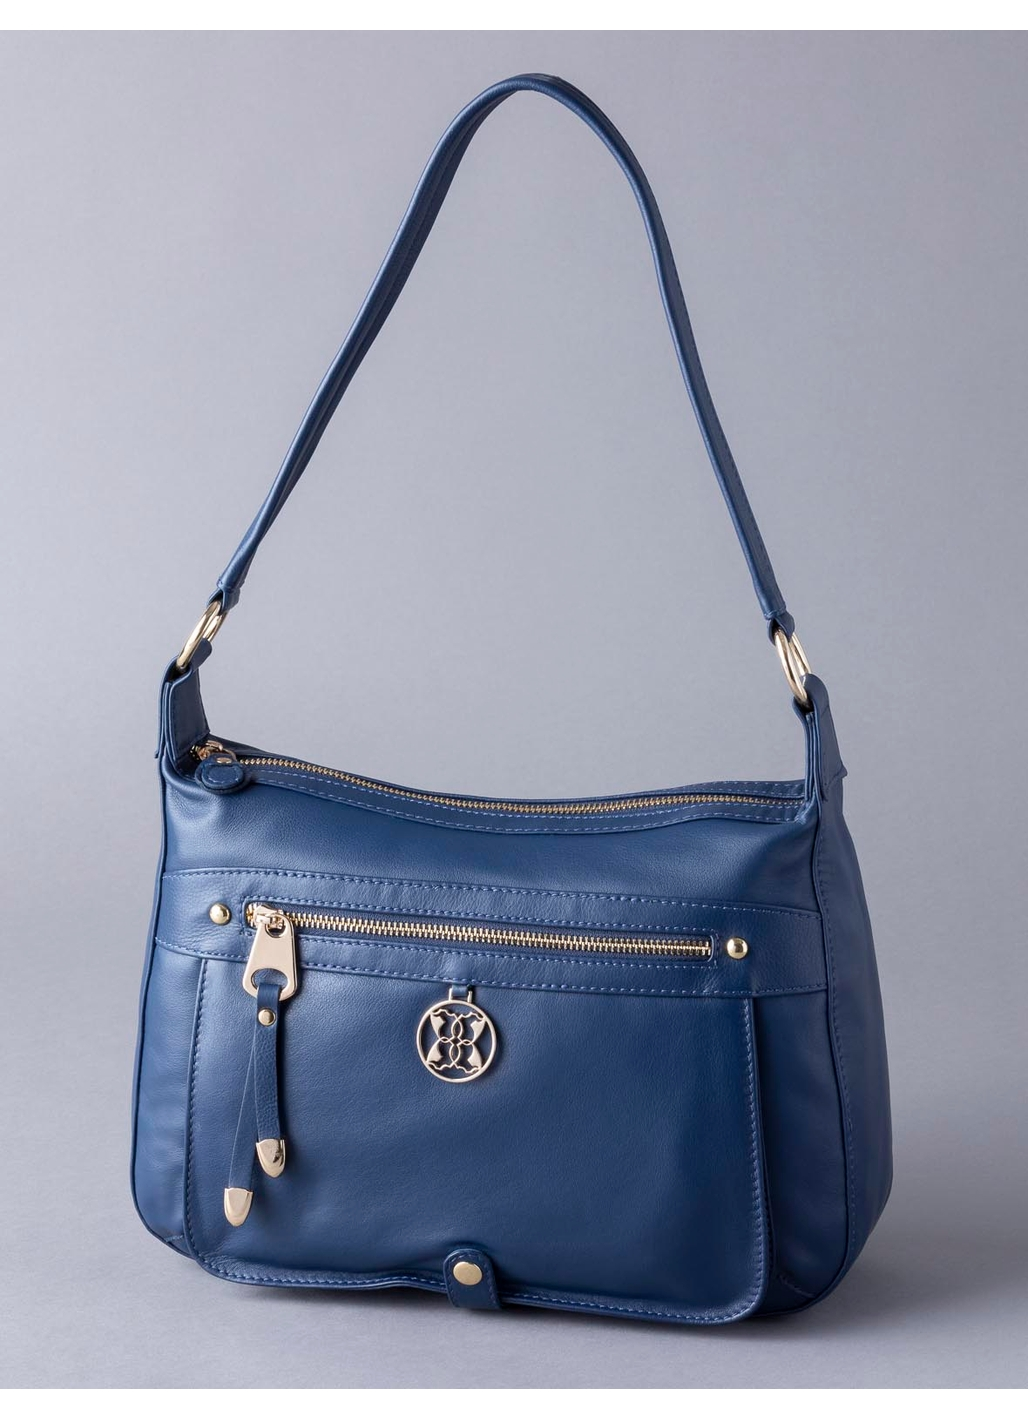 Cartmel II Leather Shoulder Bag in Navy